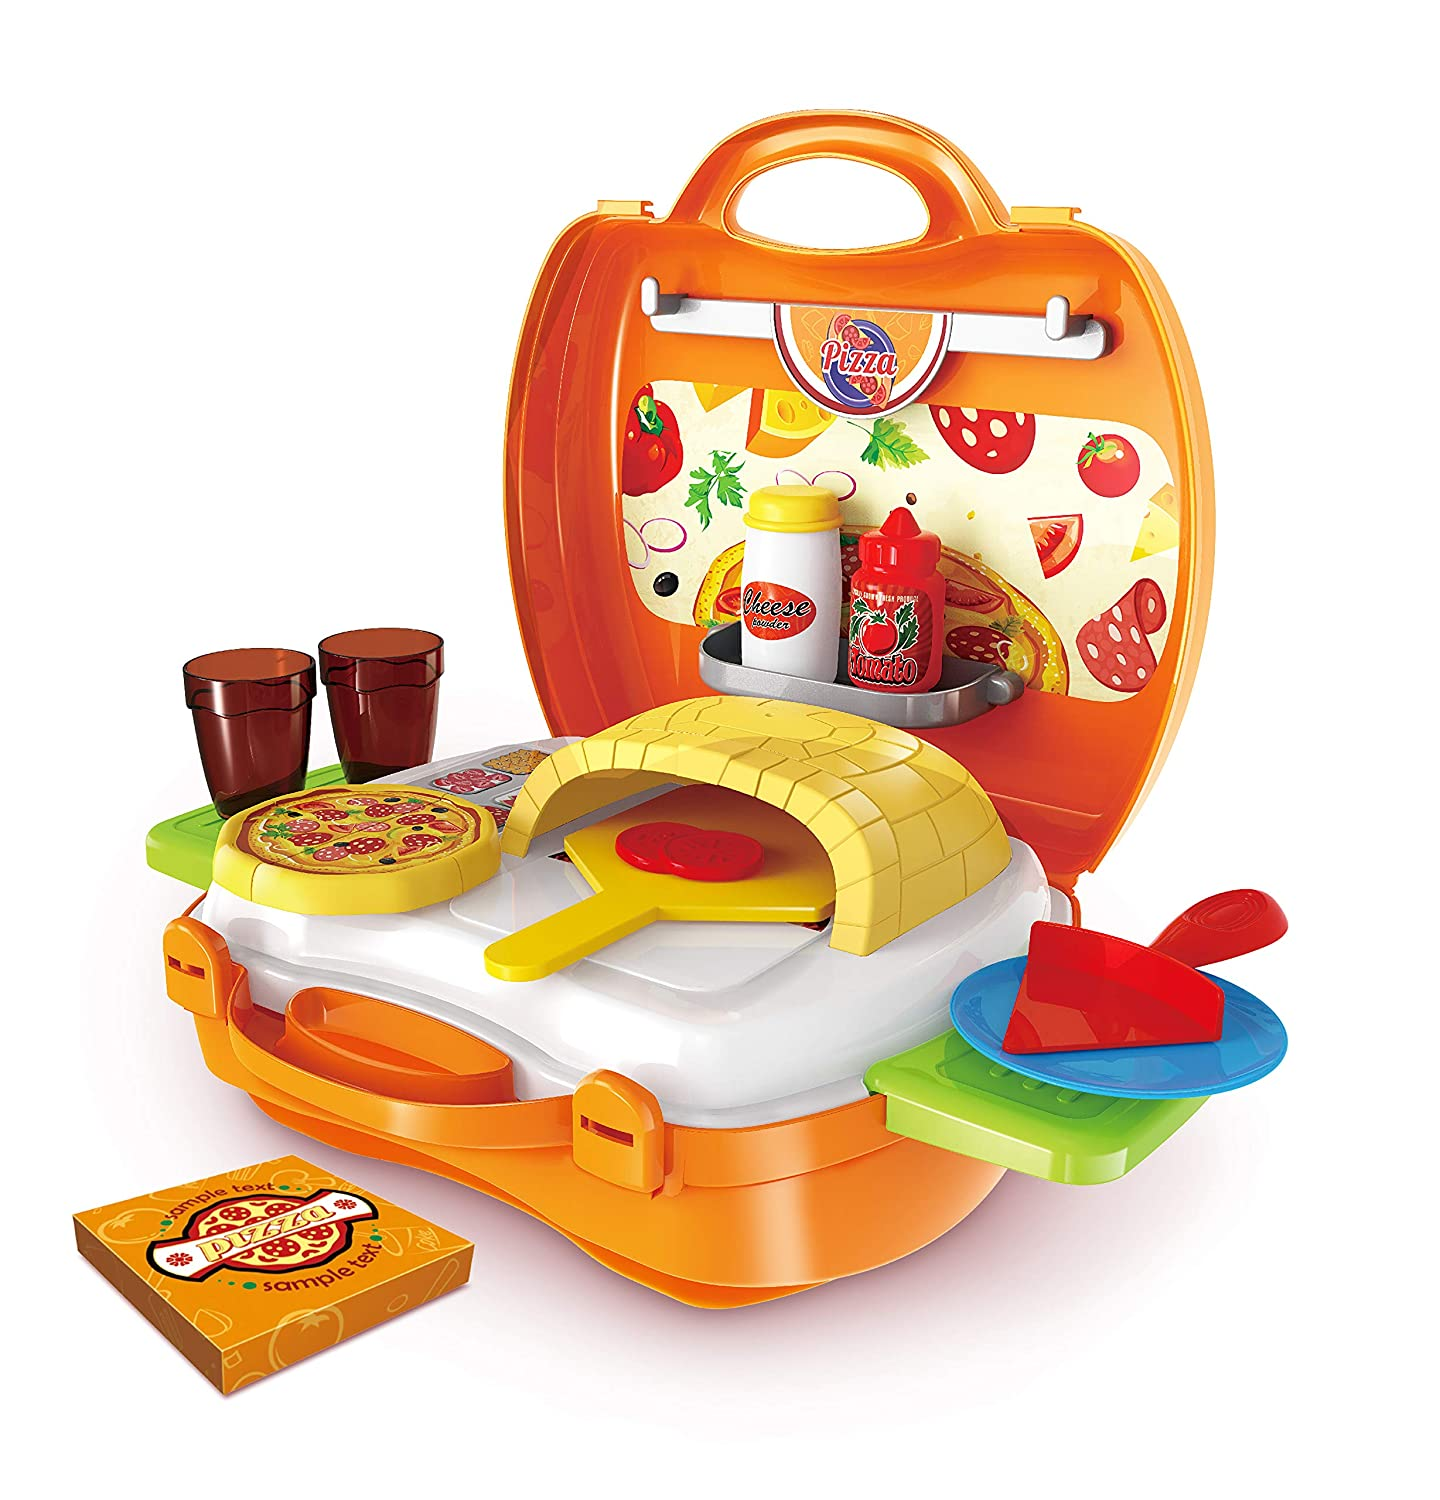 Hunson Deluxe Pizza Suitcase (Pretend Food Play Set)